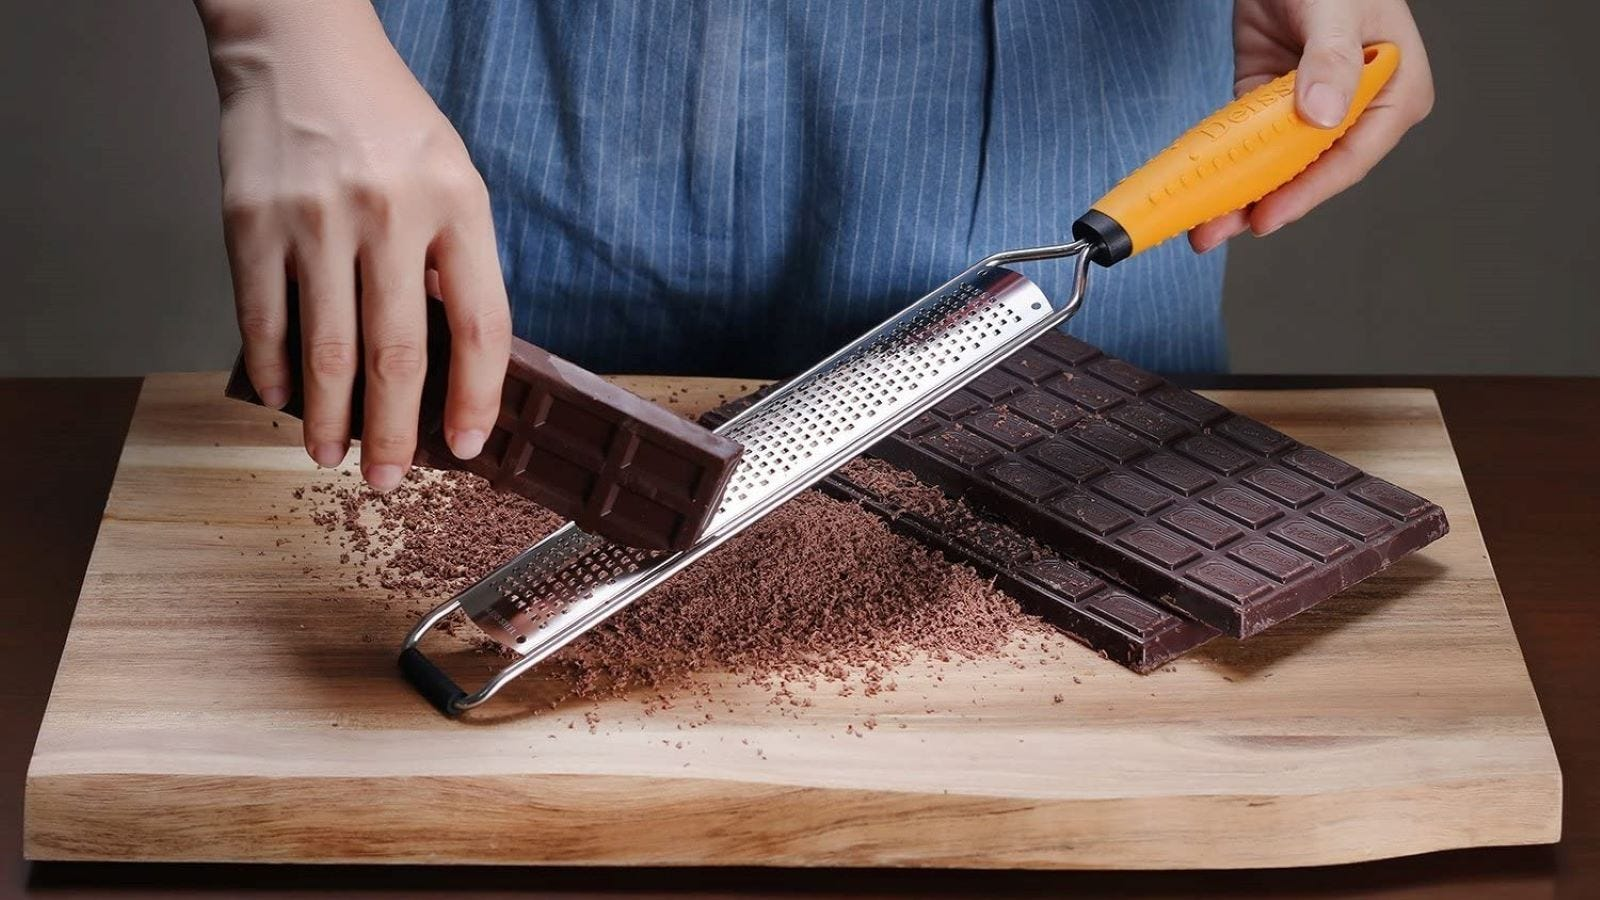 Someone grating chocolate on the Deiss PRO Citrus Zester.